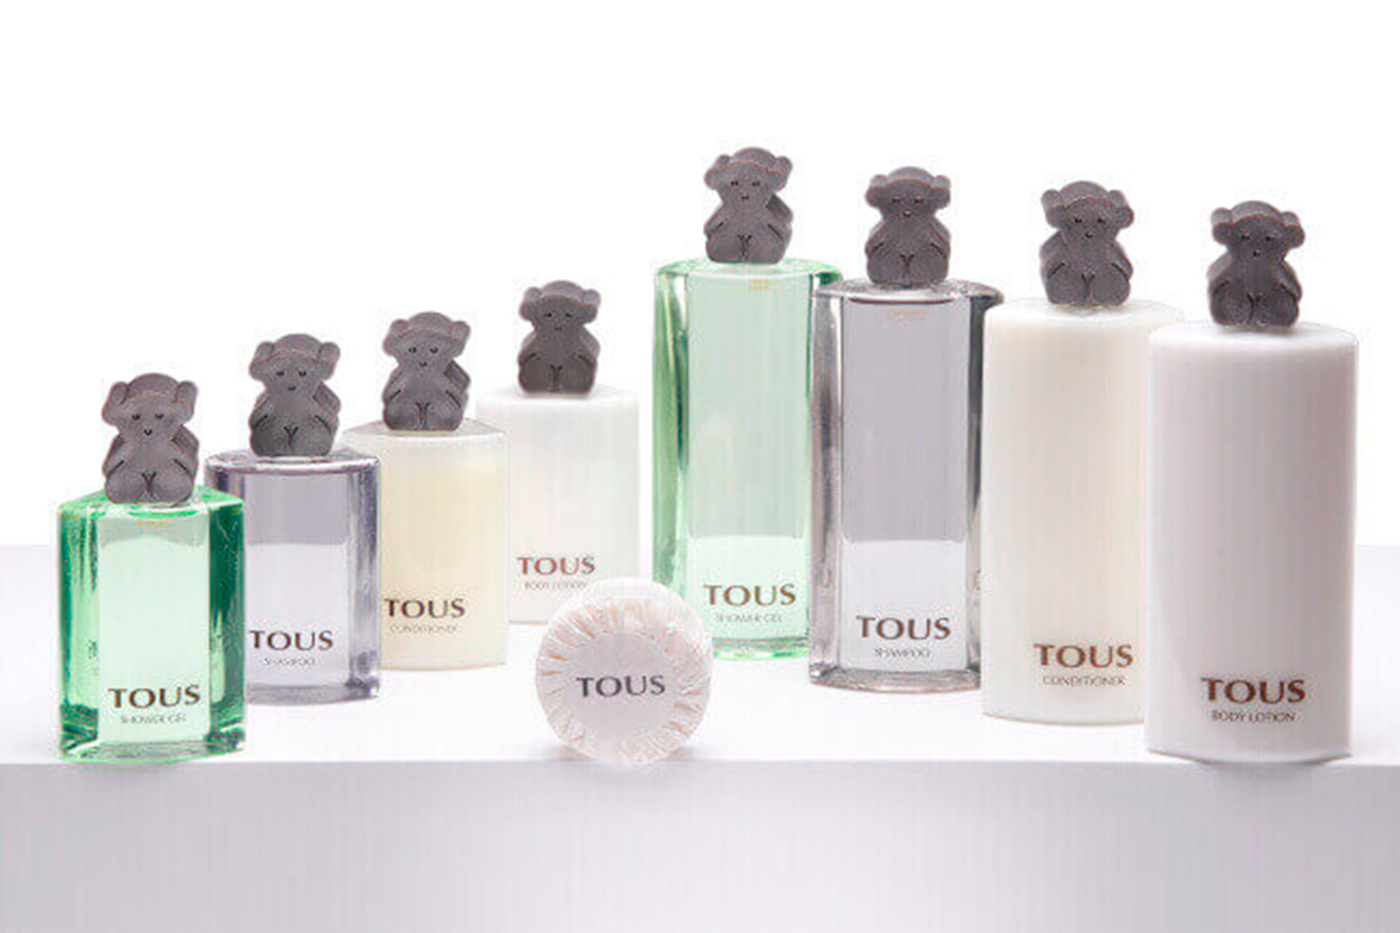 Tous jabón ositos amenities